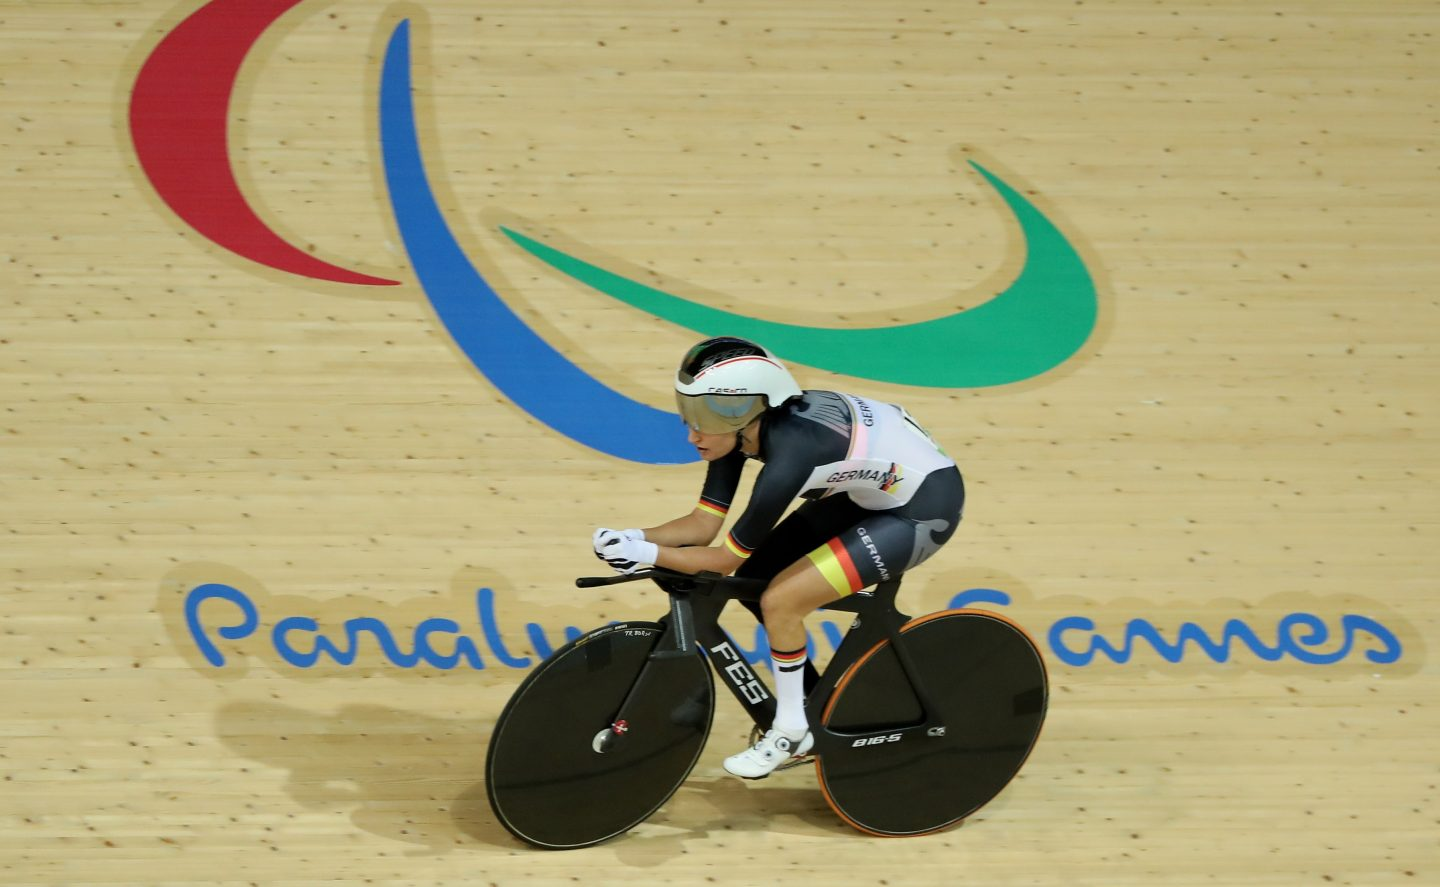 Denise Schindler cycling at 2016 Paralimpic Games in Rio De Janeiro, Brazil, para-cyclist, paralympian, paralympics, inspiration, motivation, cycling, GamePlan A